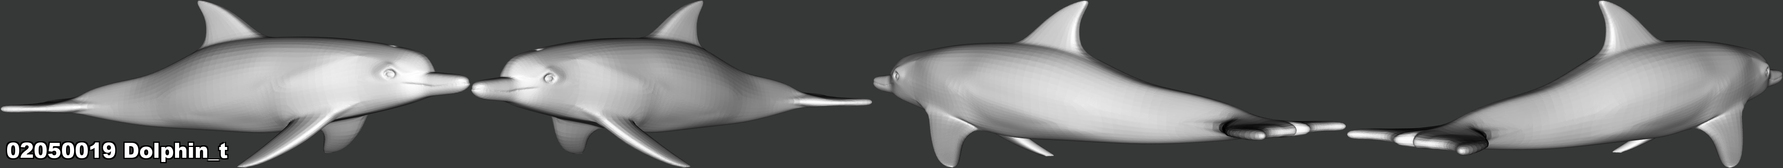 02050019 Dolphin_t.png